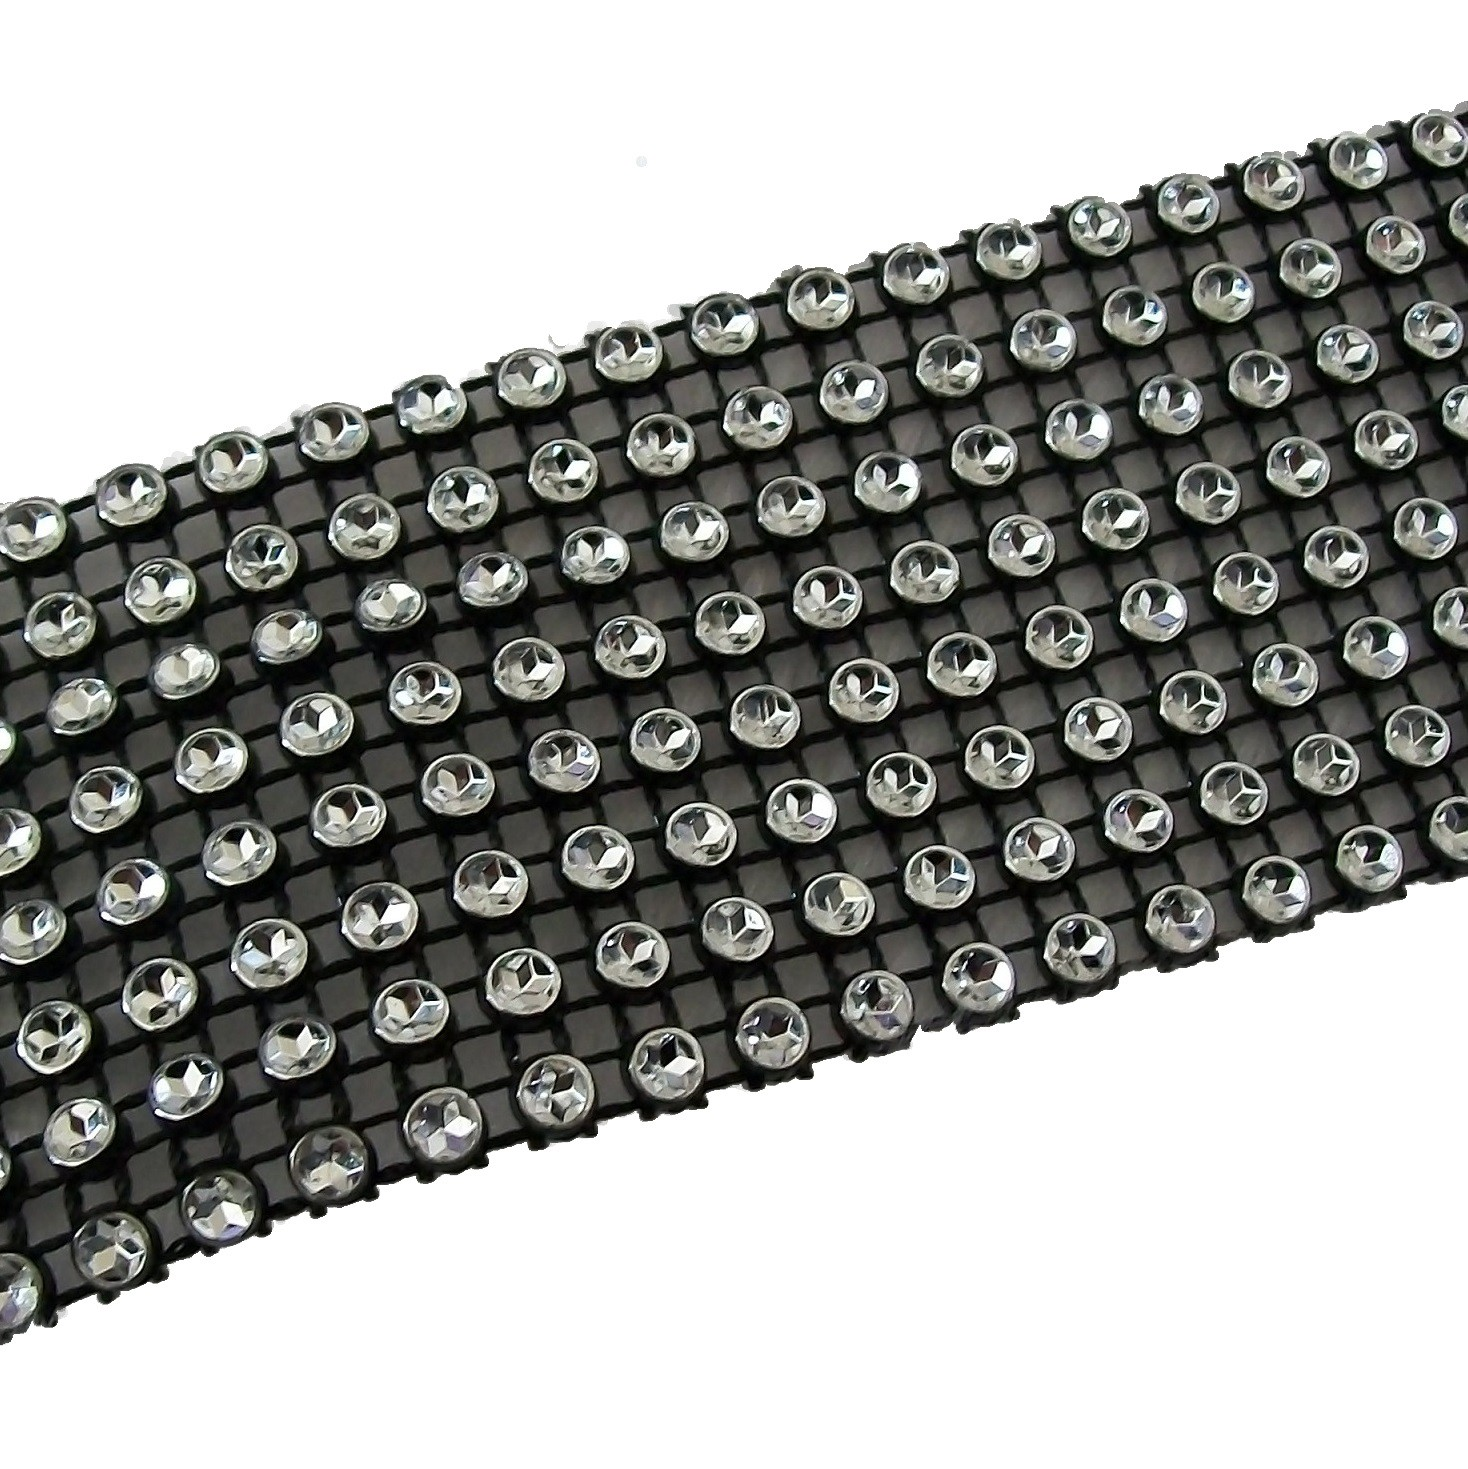 8 Row Diamante Trim 3.8cm Wide Black 1 metre length